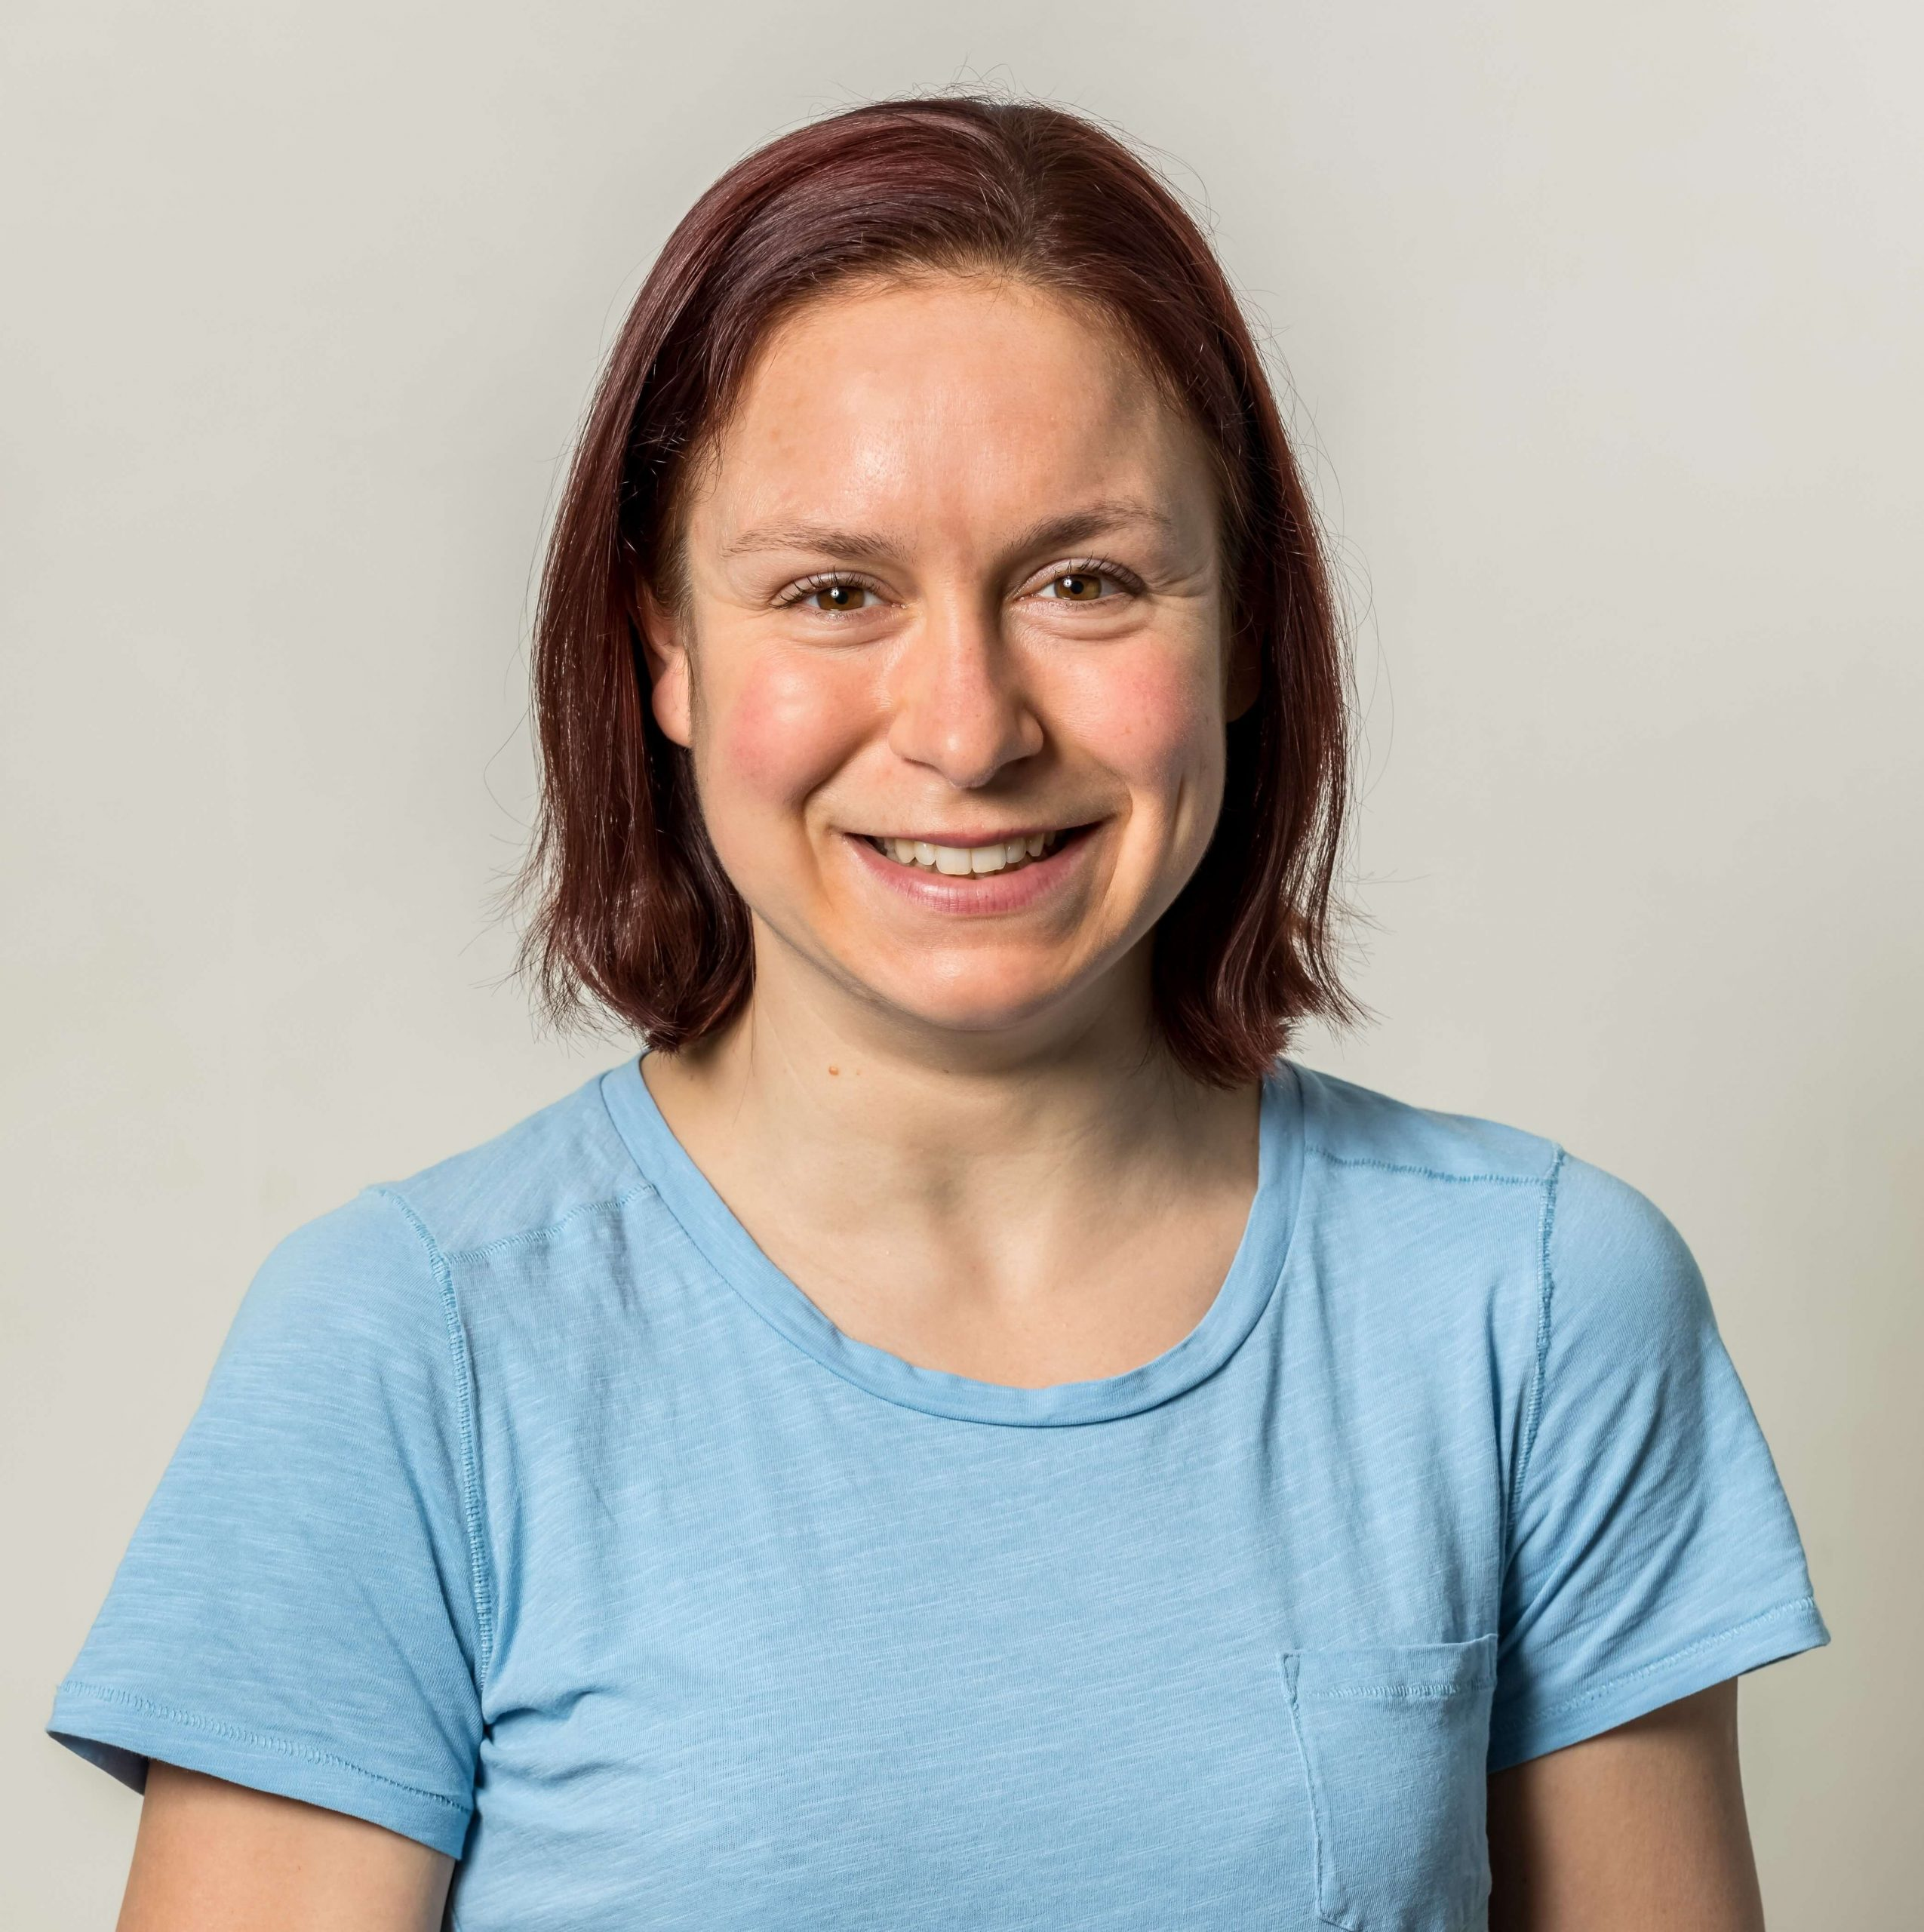 DR POLLY KEEN